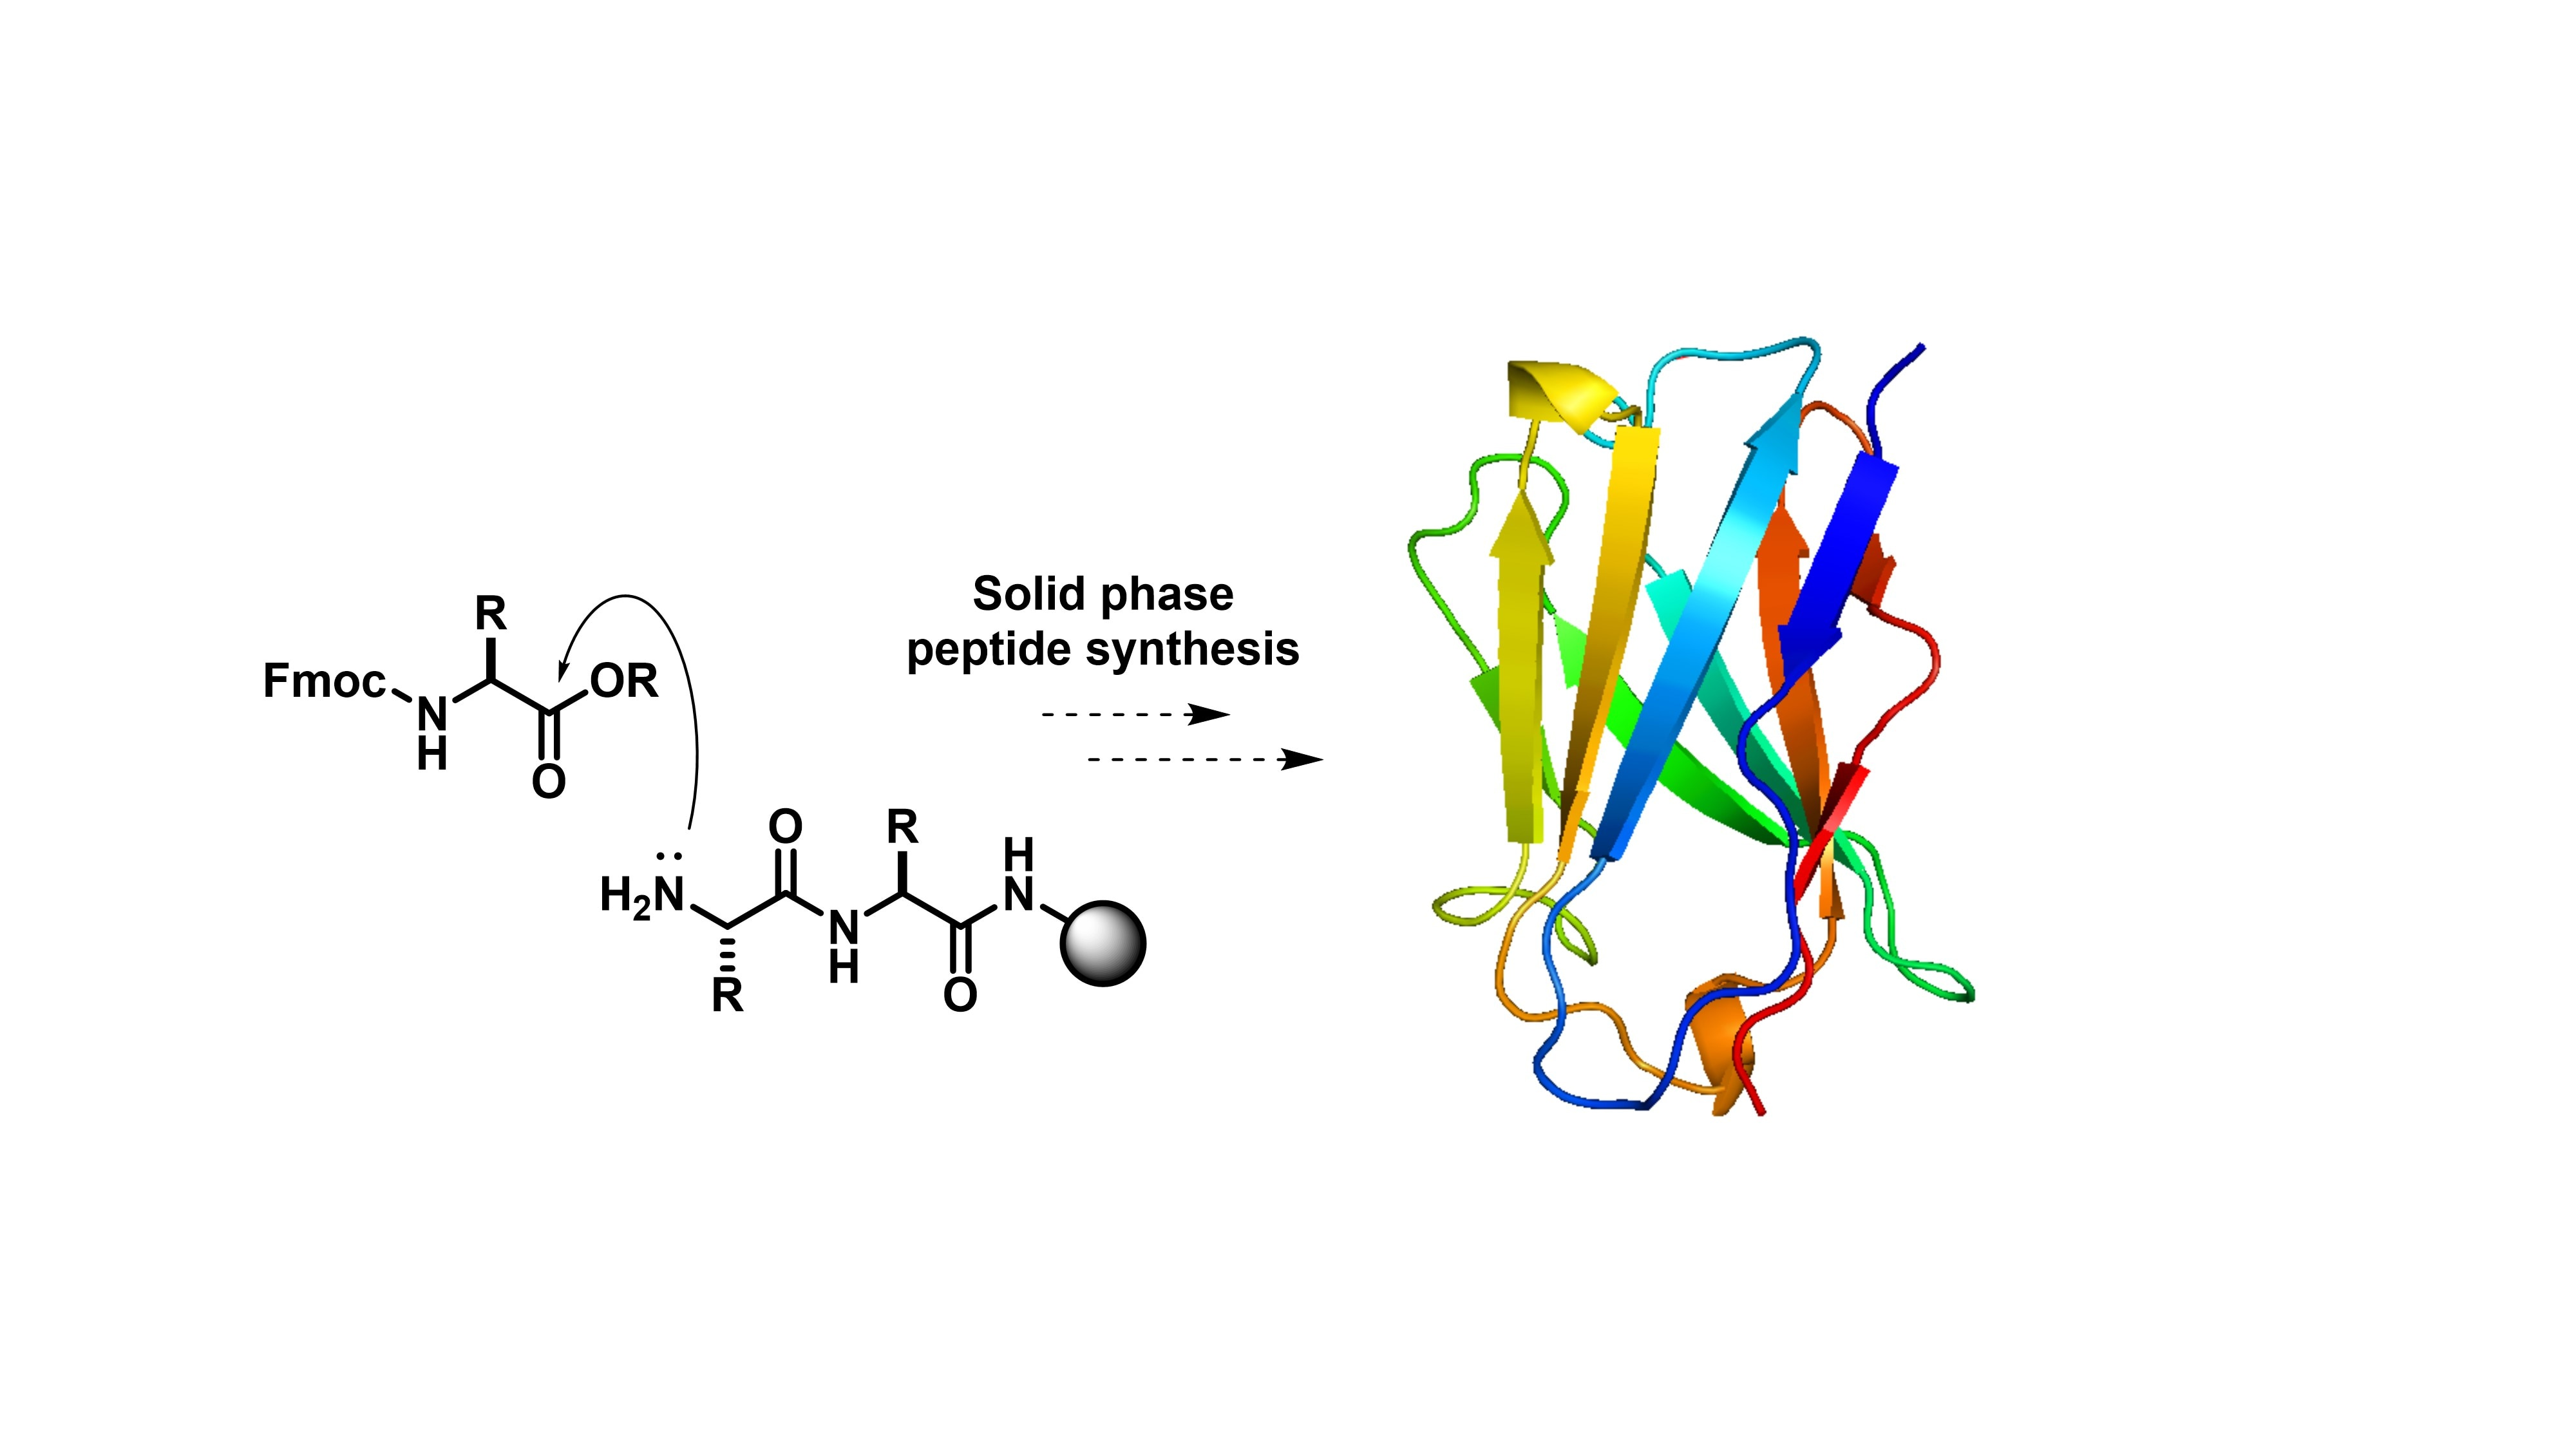 Diagram of Solid phase peptide synthesis